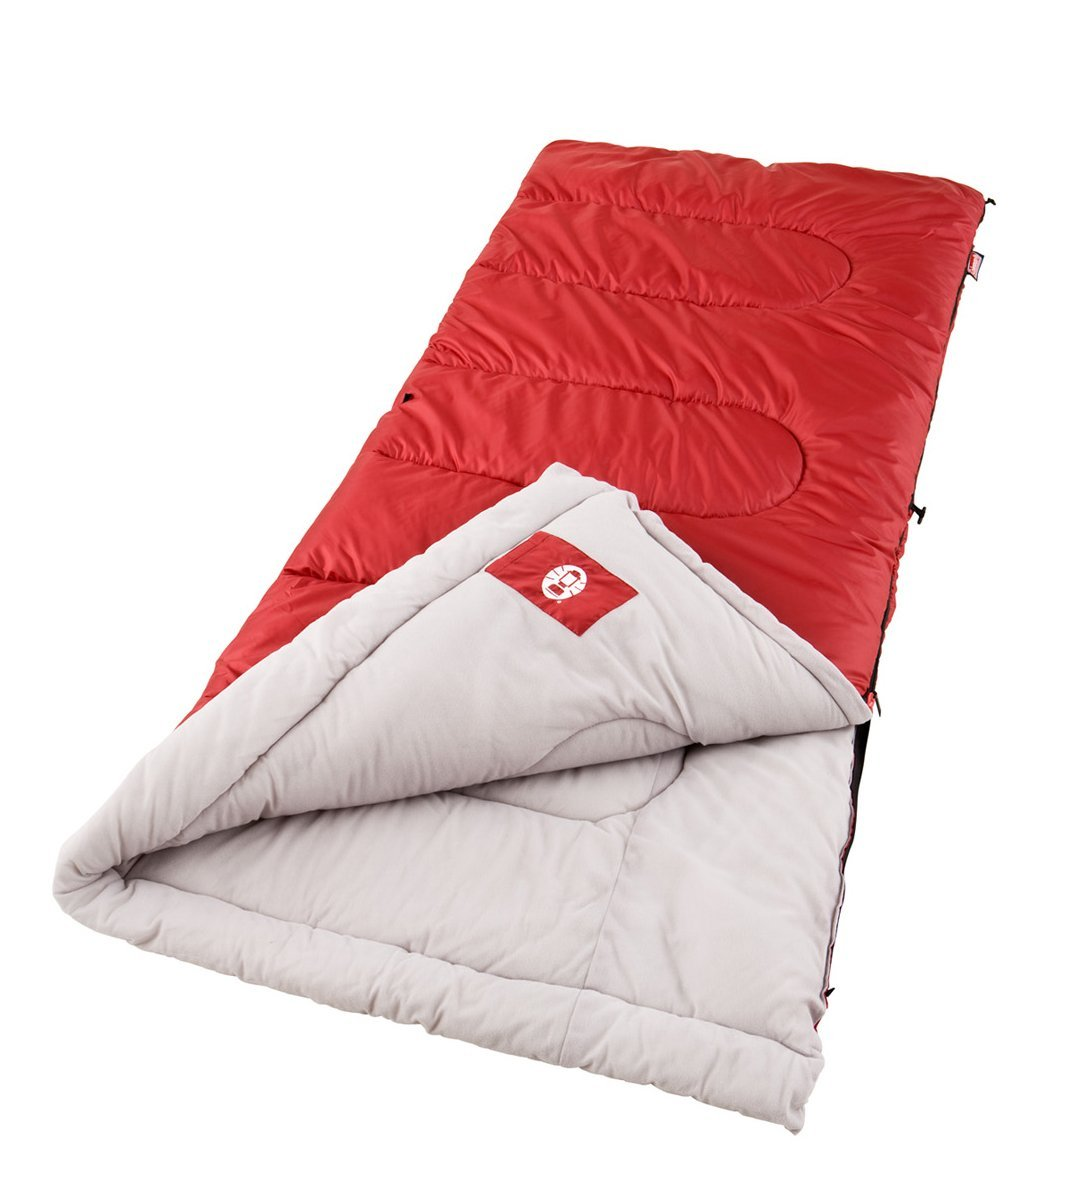 Target Sleeping Bags Coleman Palmetto Cool Weather Sleeping Bag Only 16 99